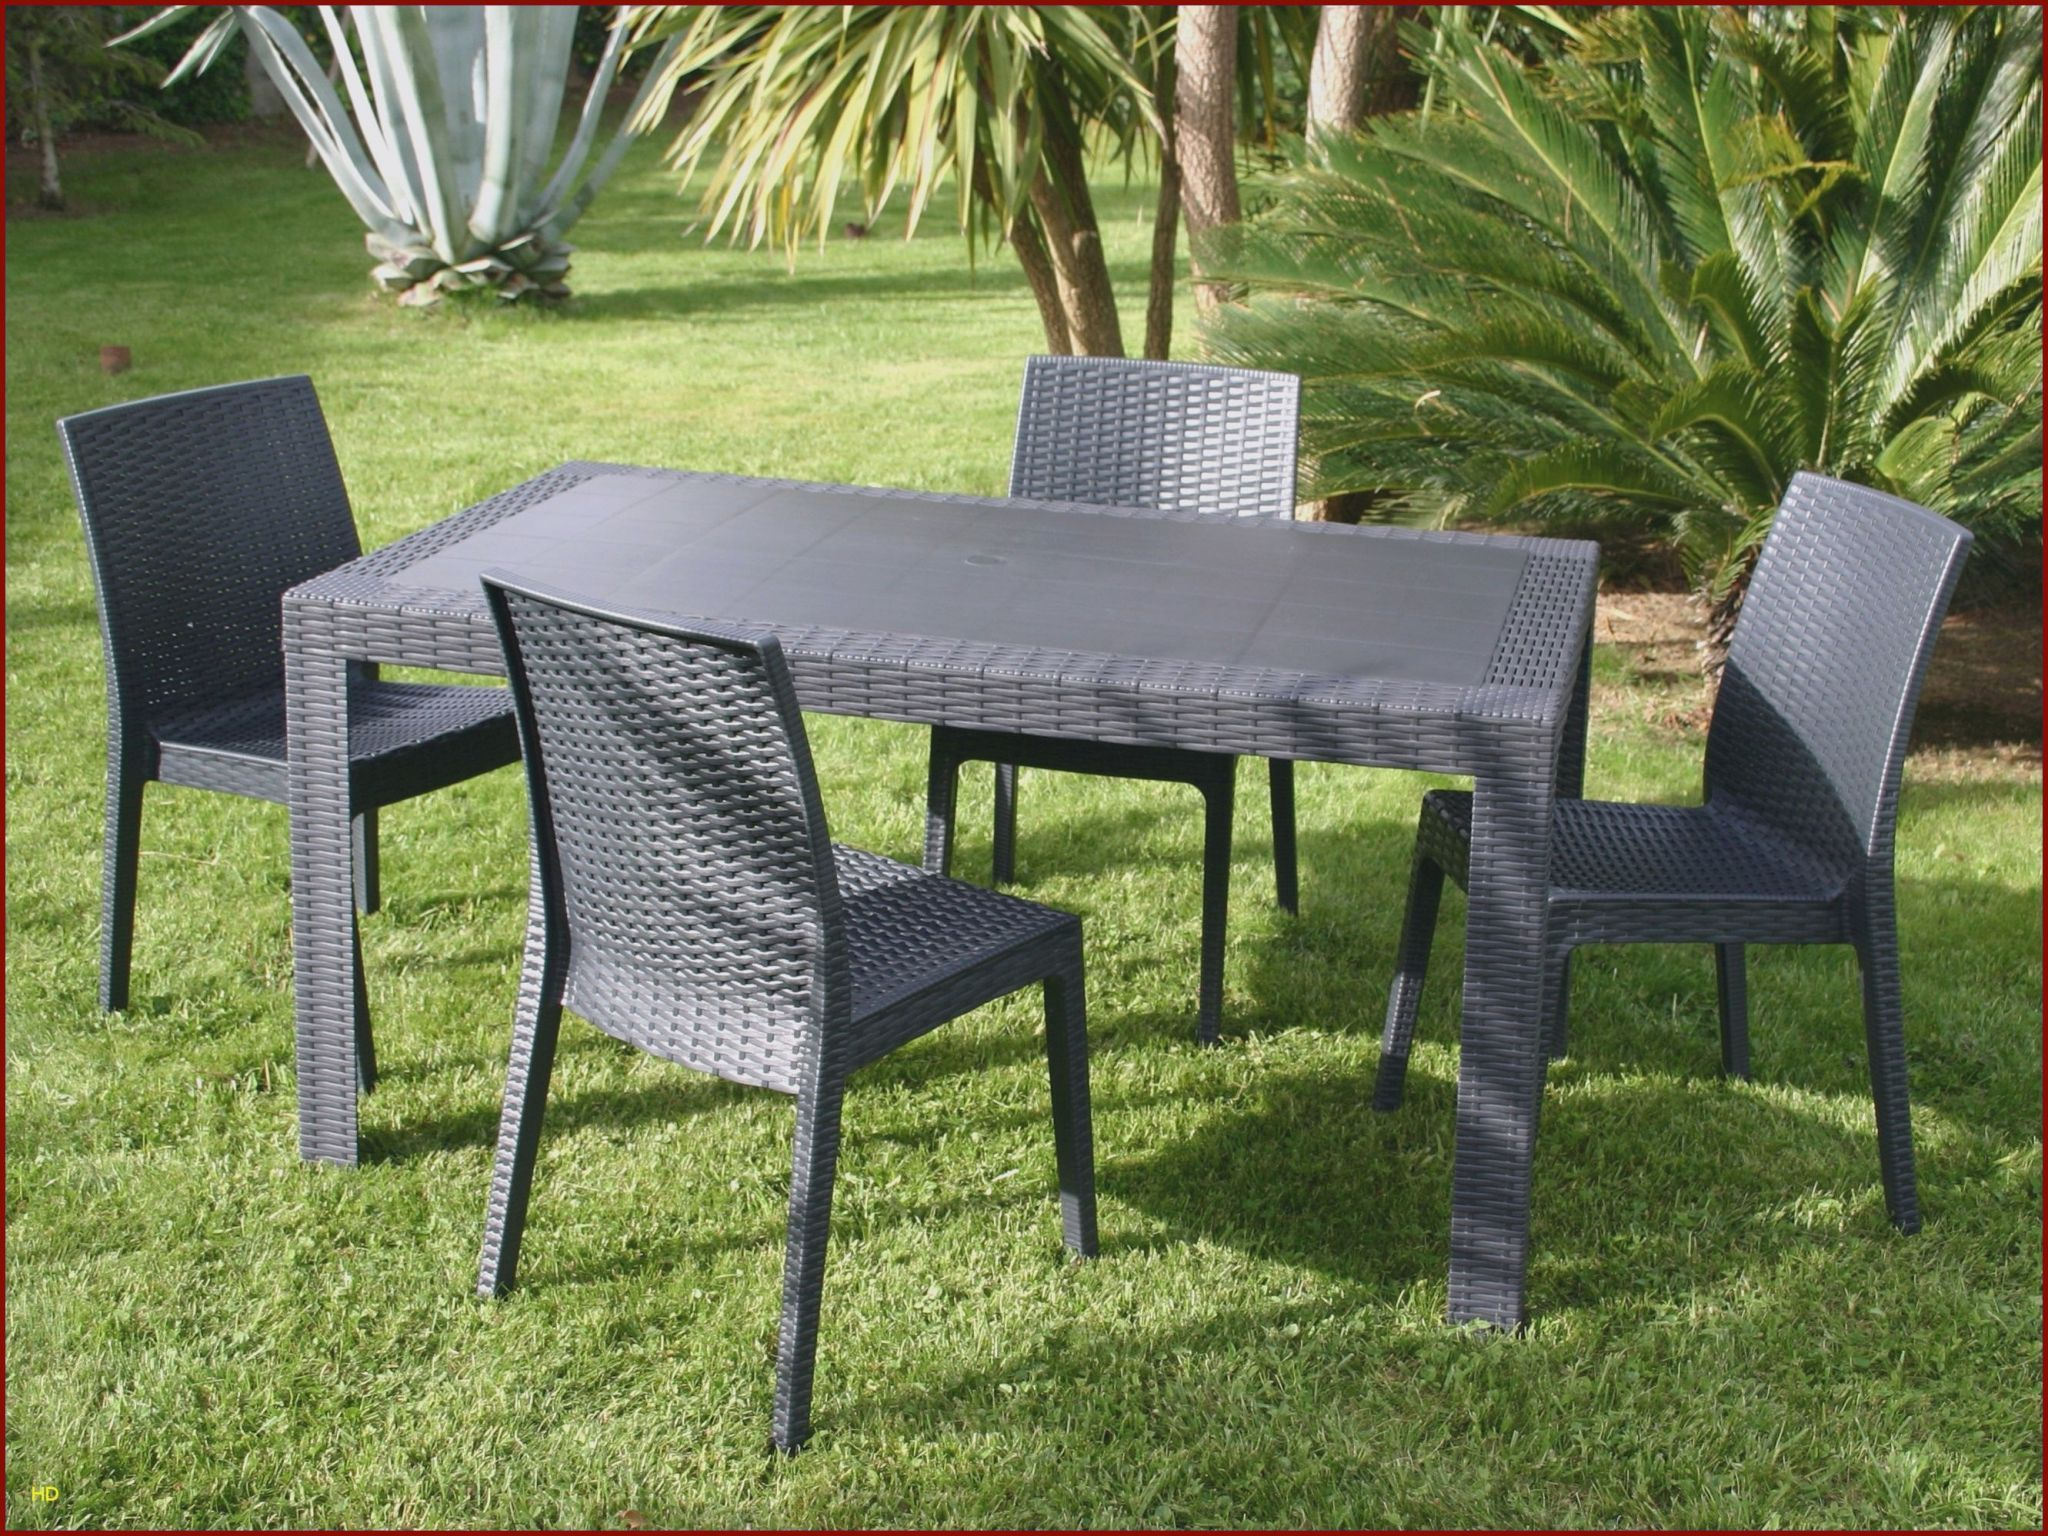 Table Jardin solde Unique Chaises Luxe Chaise Ice 0d Table Jardin Resine Lovely